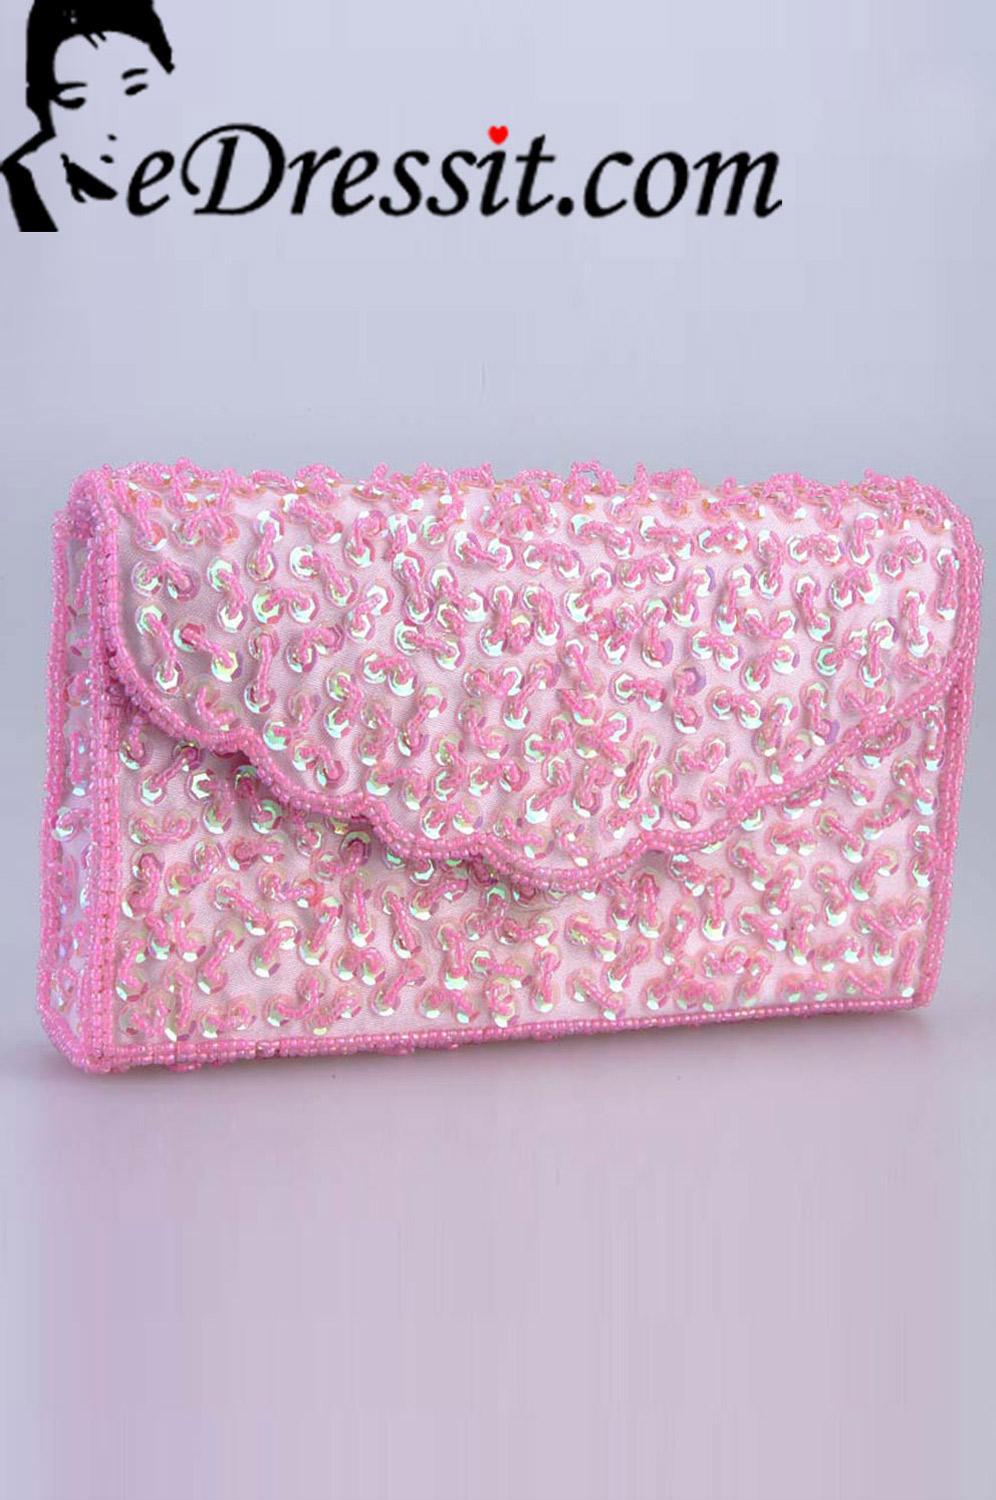 eDressit Women's Pink Bag/Purse (08140101)